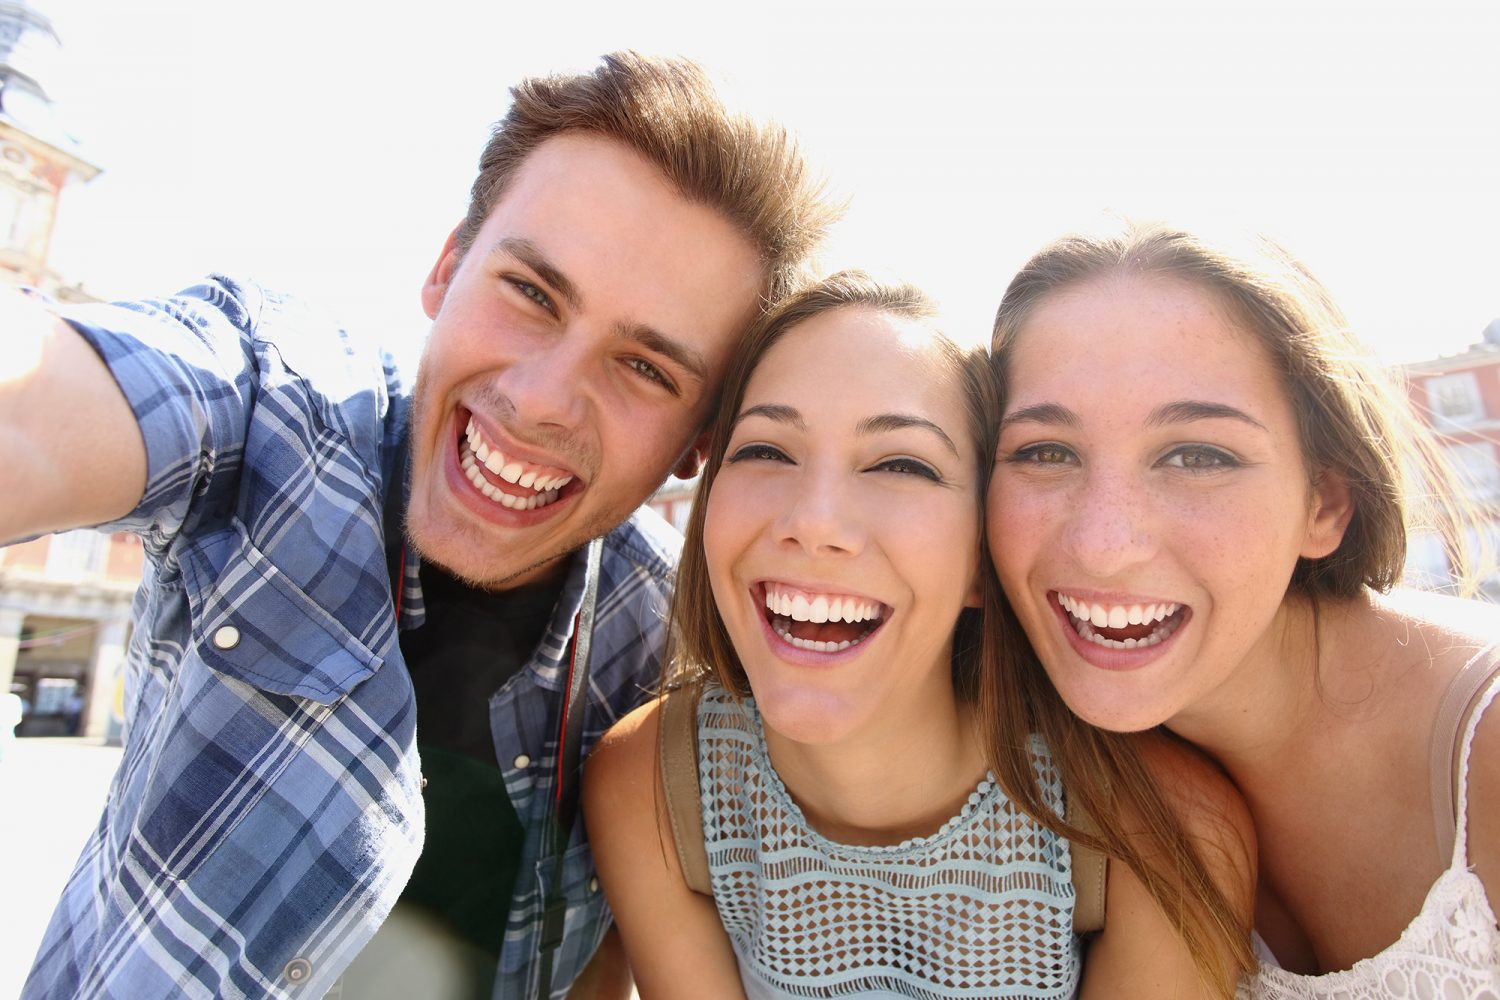 Orthodontic Treatment Made Affordable in Salt Lake City